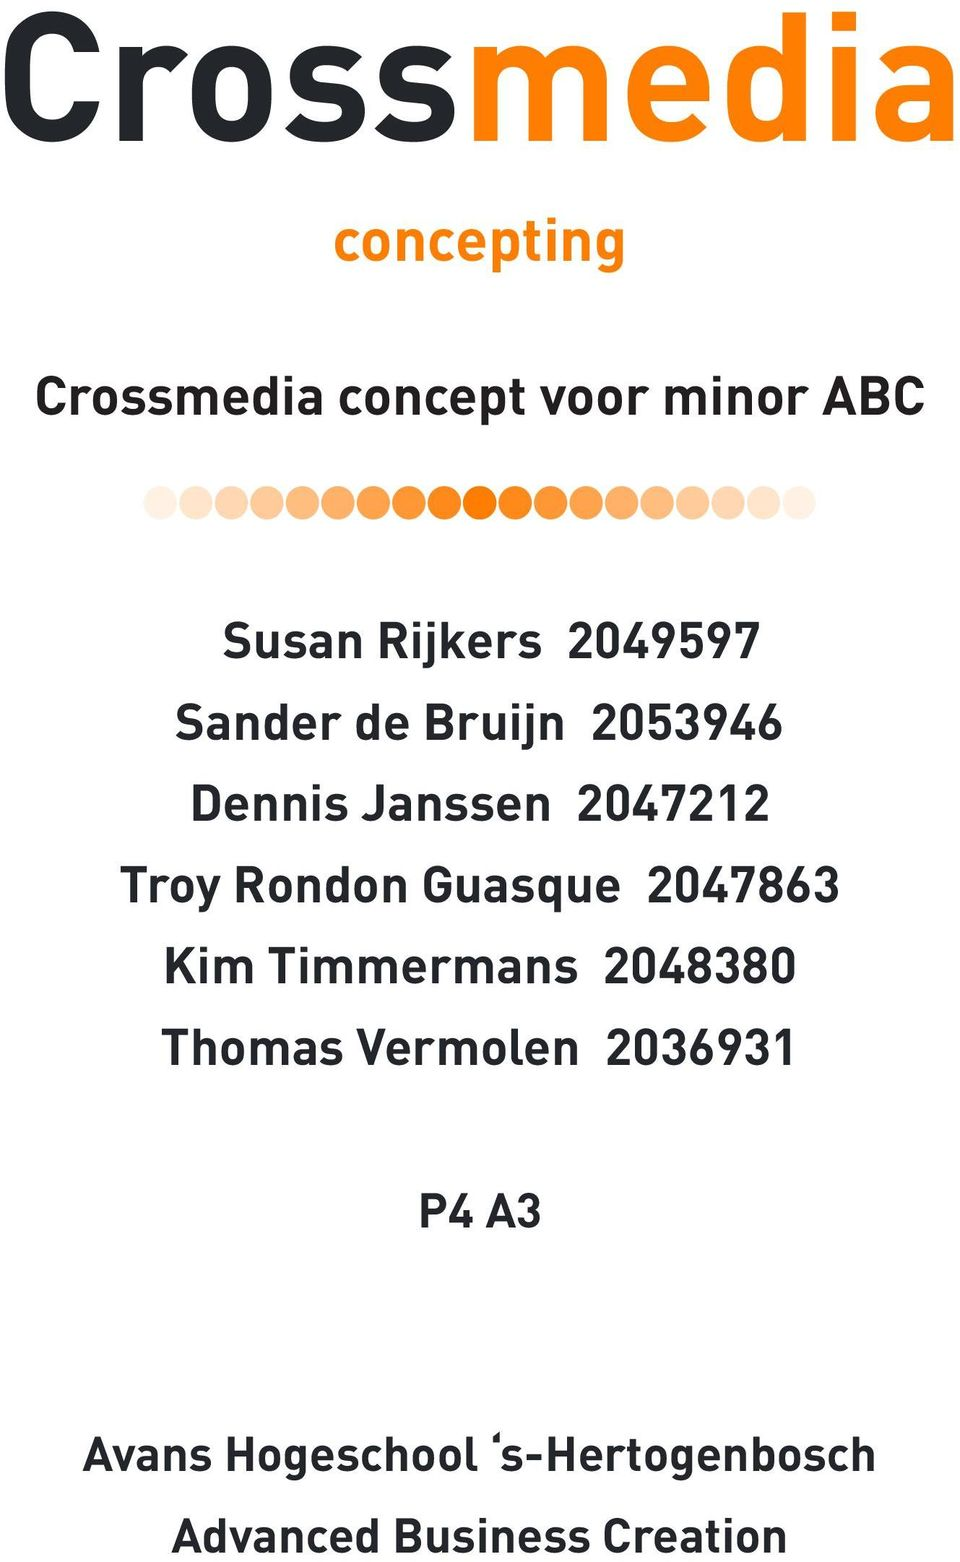 Troy Rondon Guasque 2047863 Kim Timmermans 2048380 Thomas Vermolen